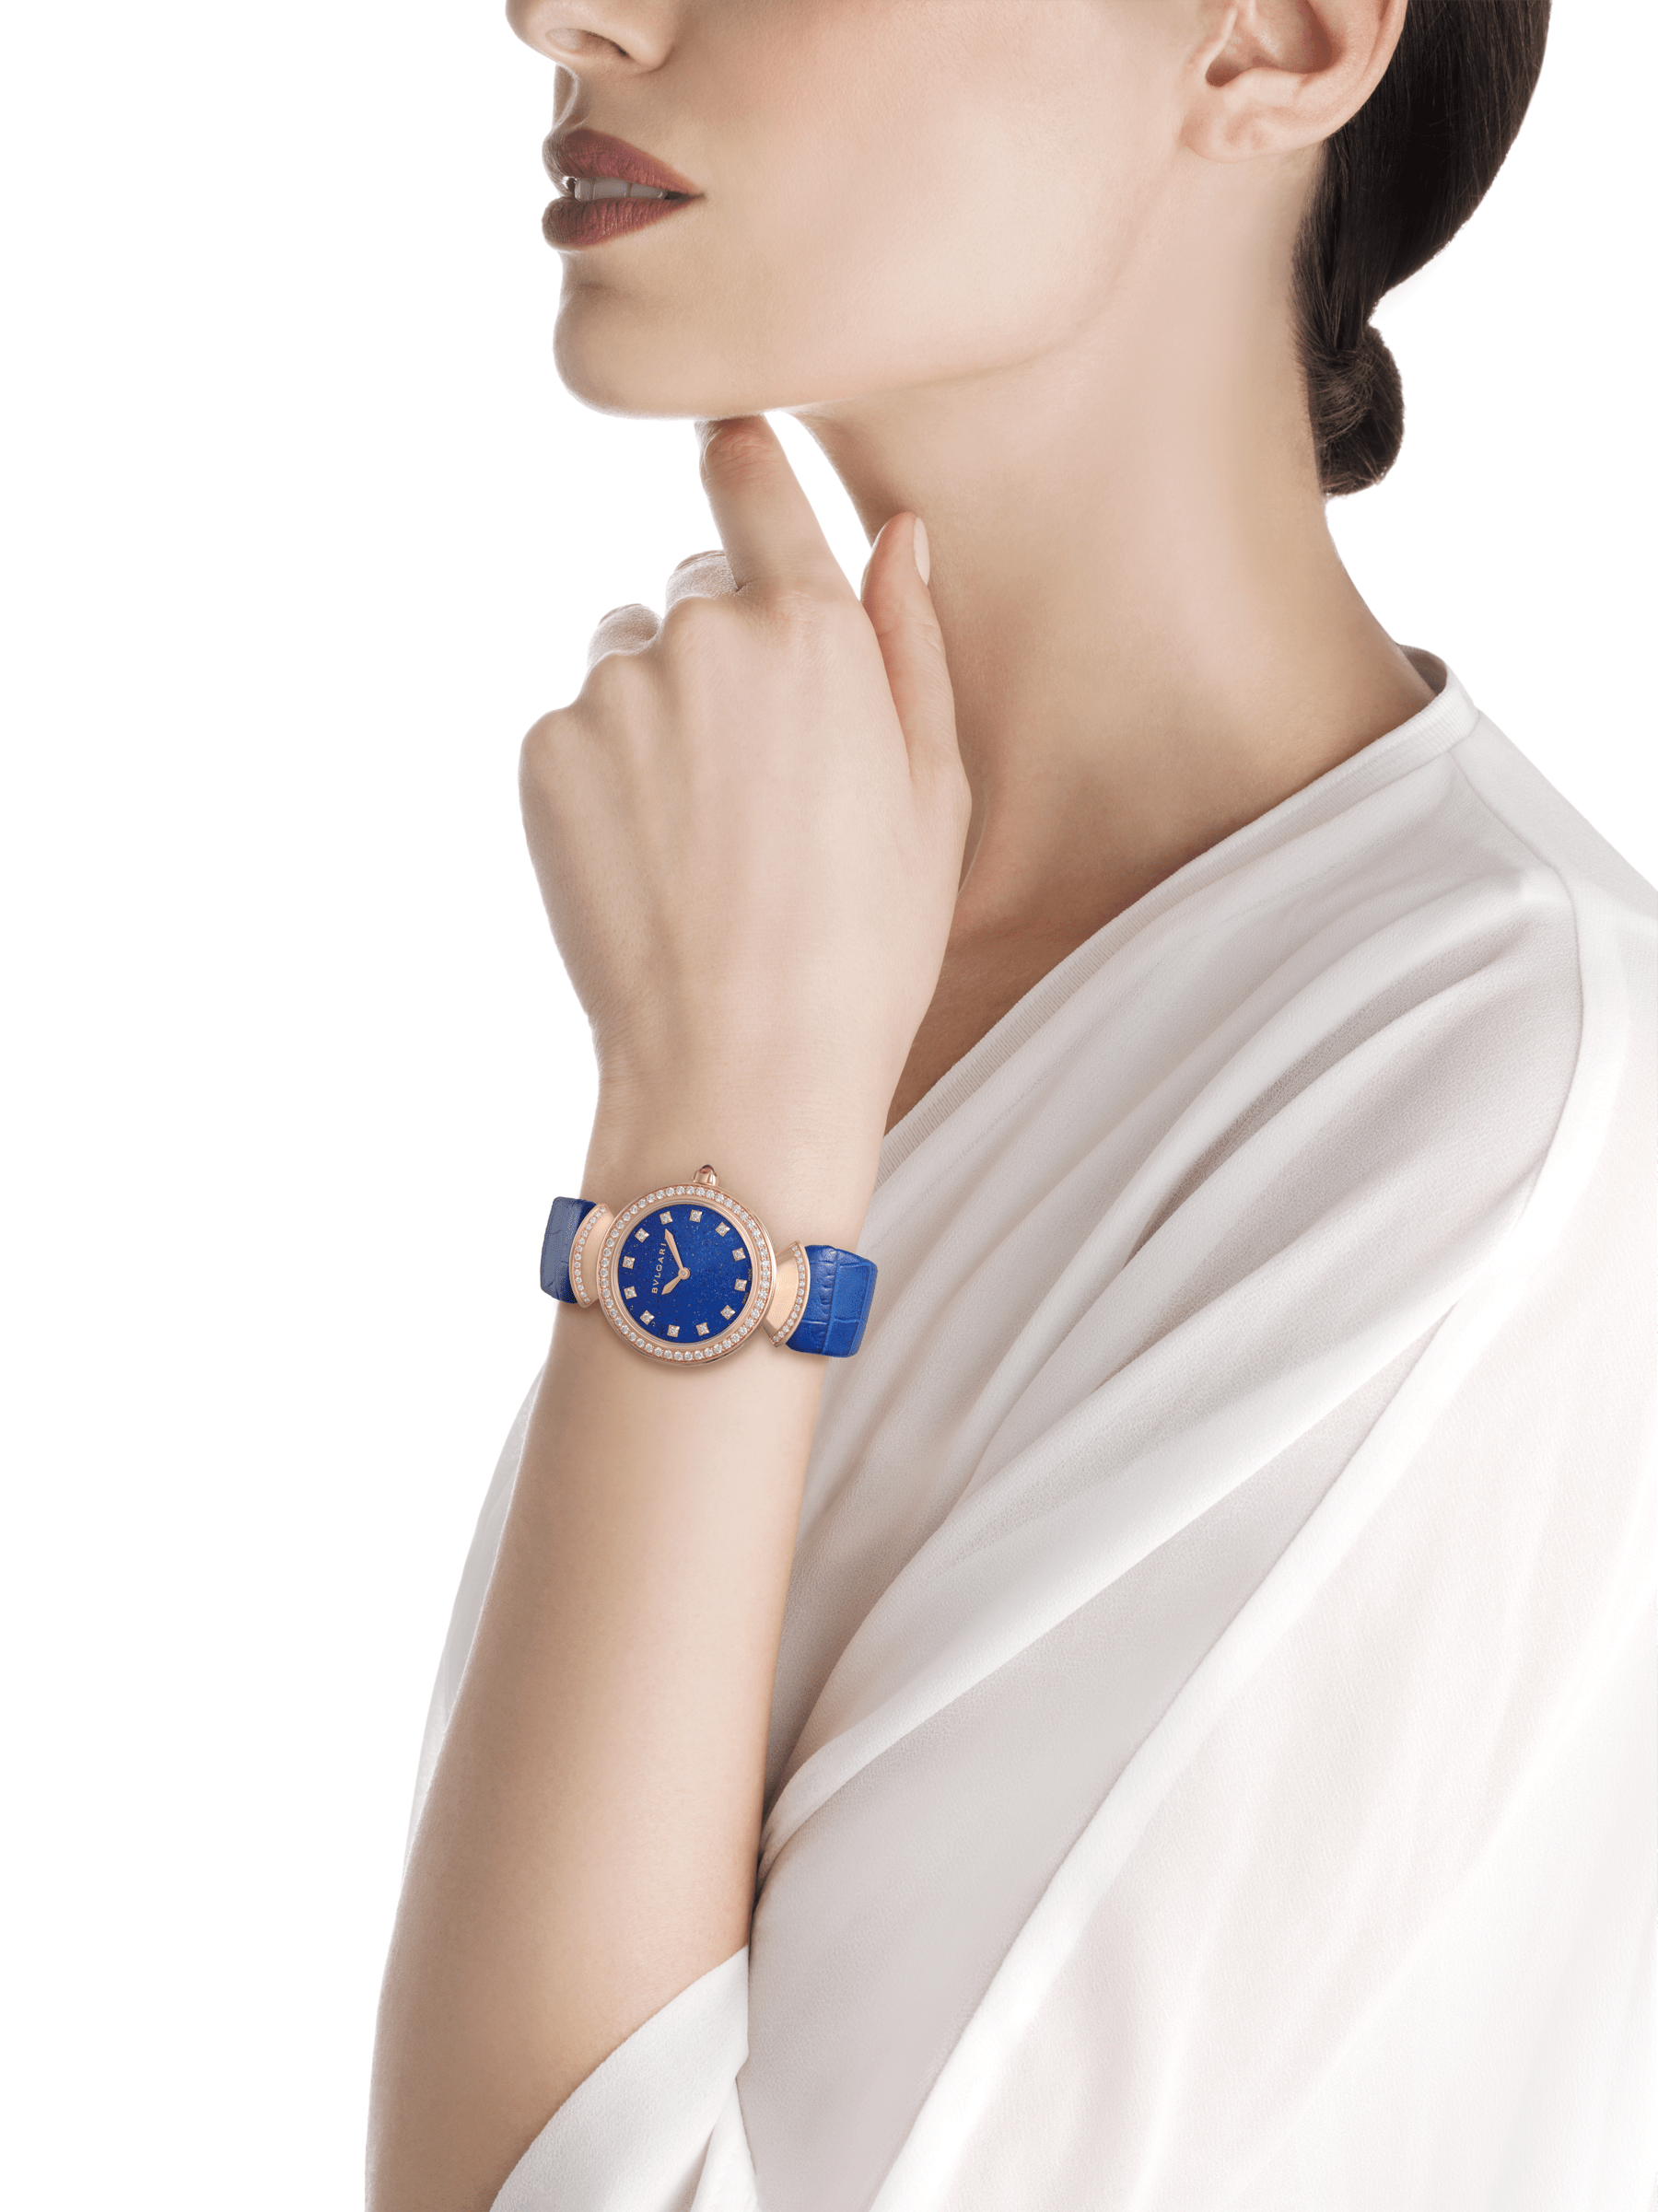 DIVAS' DREAM watch with 18 kt rose gold case, 18 kt rose gold bezel and fan-shaped links both set with round brilliant-cut diamonds, lapis lazuli dial, diamond indexes and blue alligator bracelet 103261 image 4